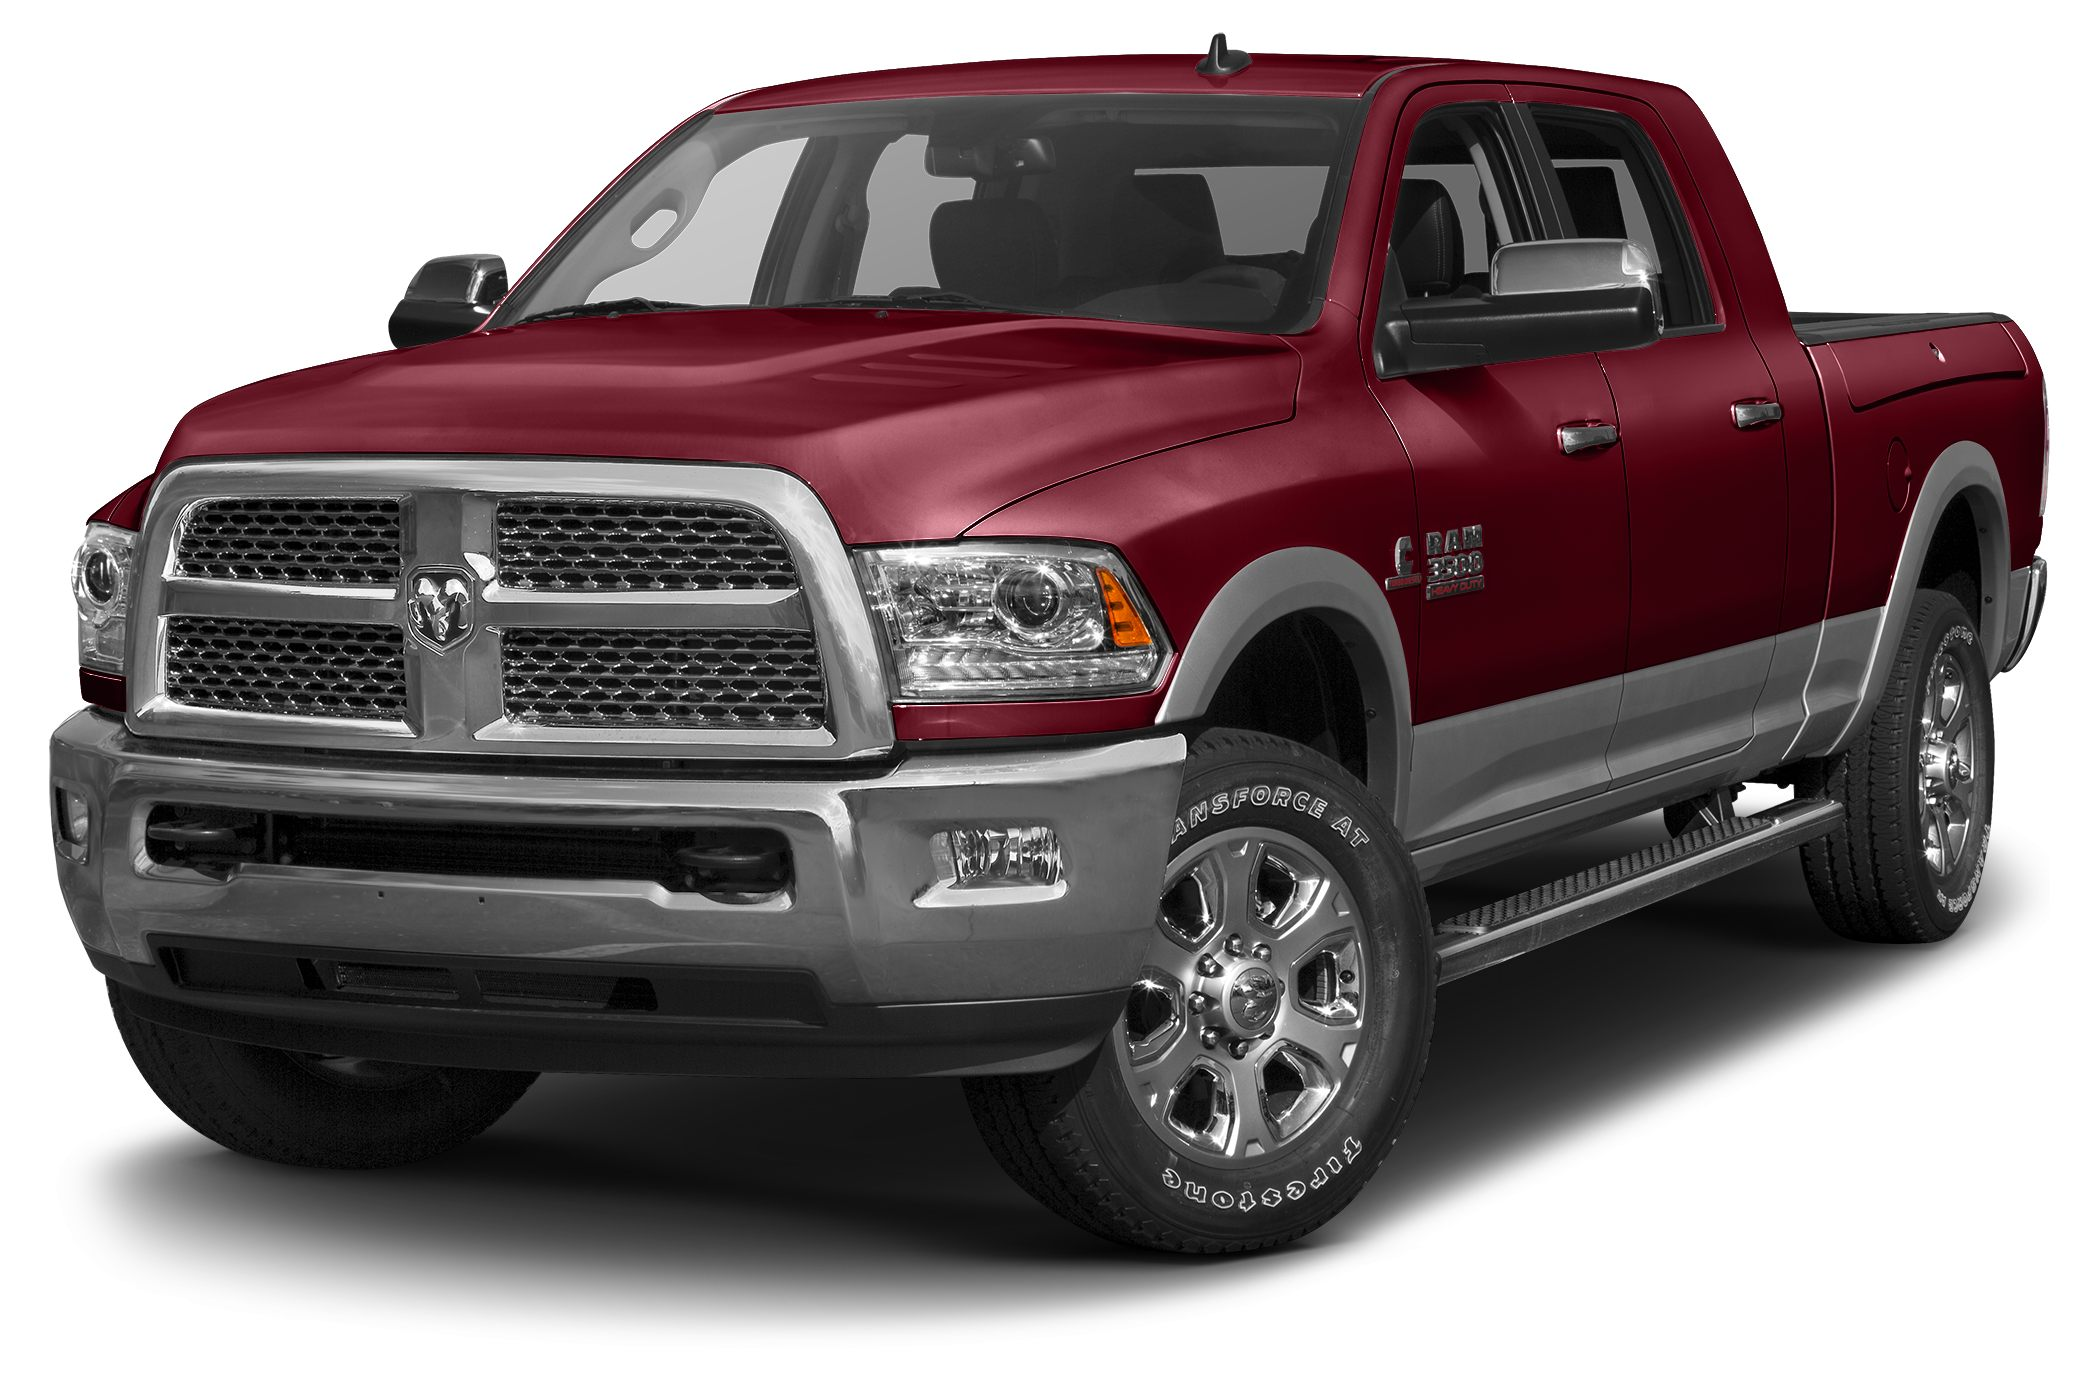 2016 RAM 3500 Laramie Longhorn Heated Leather Seats Navigation Bed Liner 4x4 Heated Rear Seat